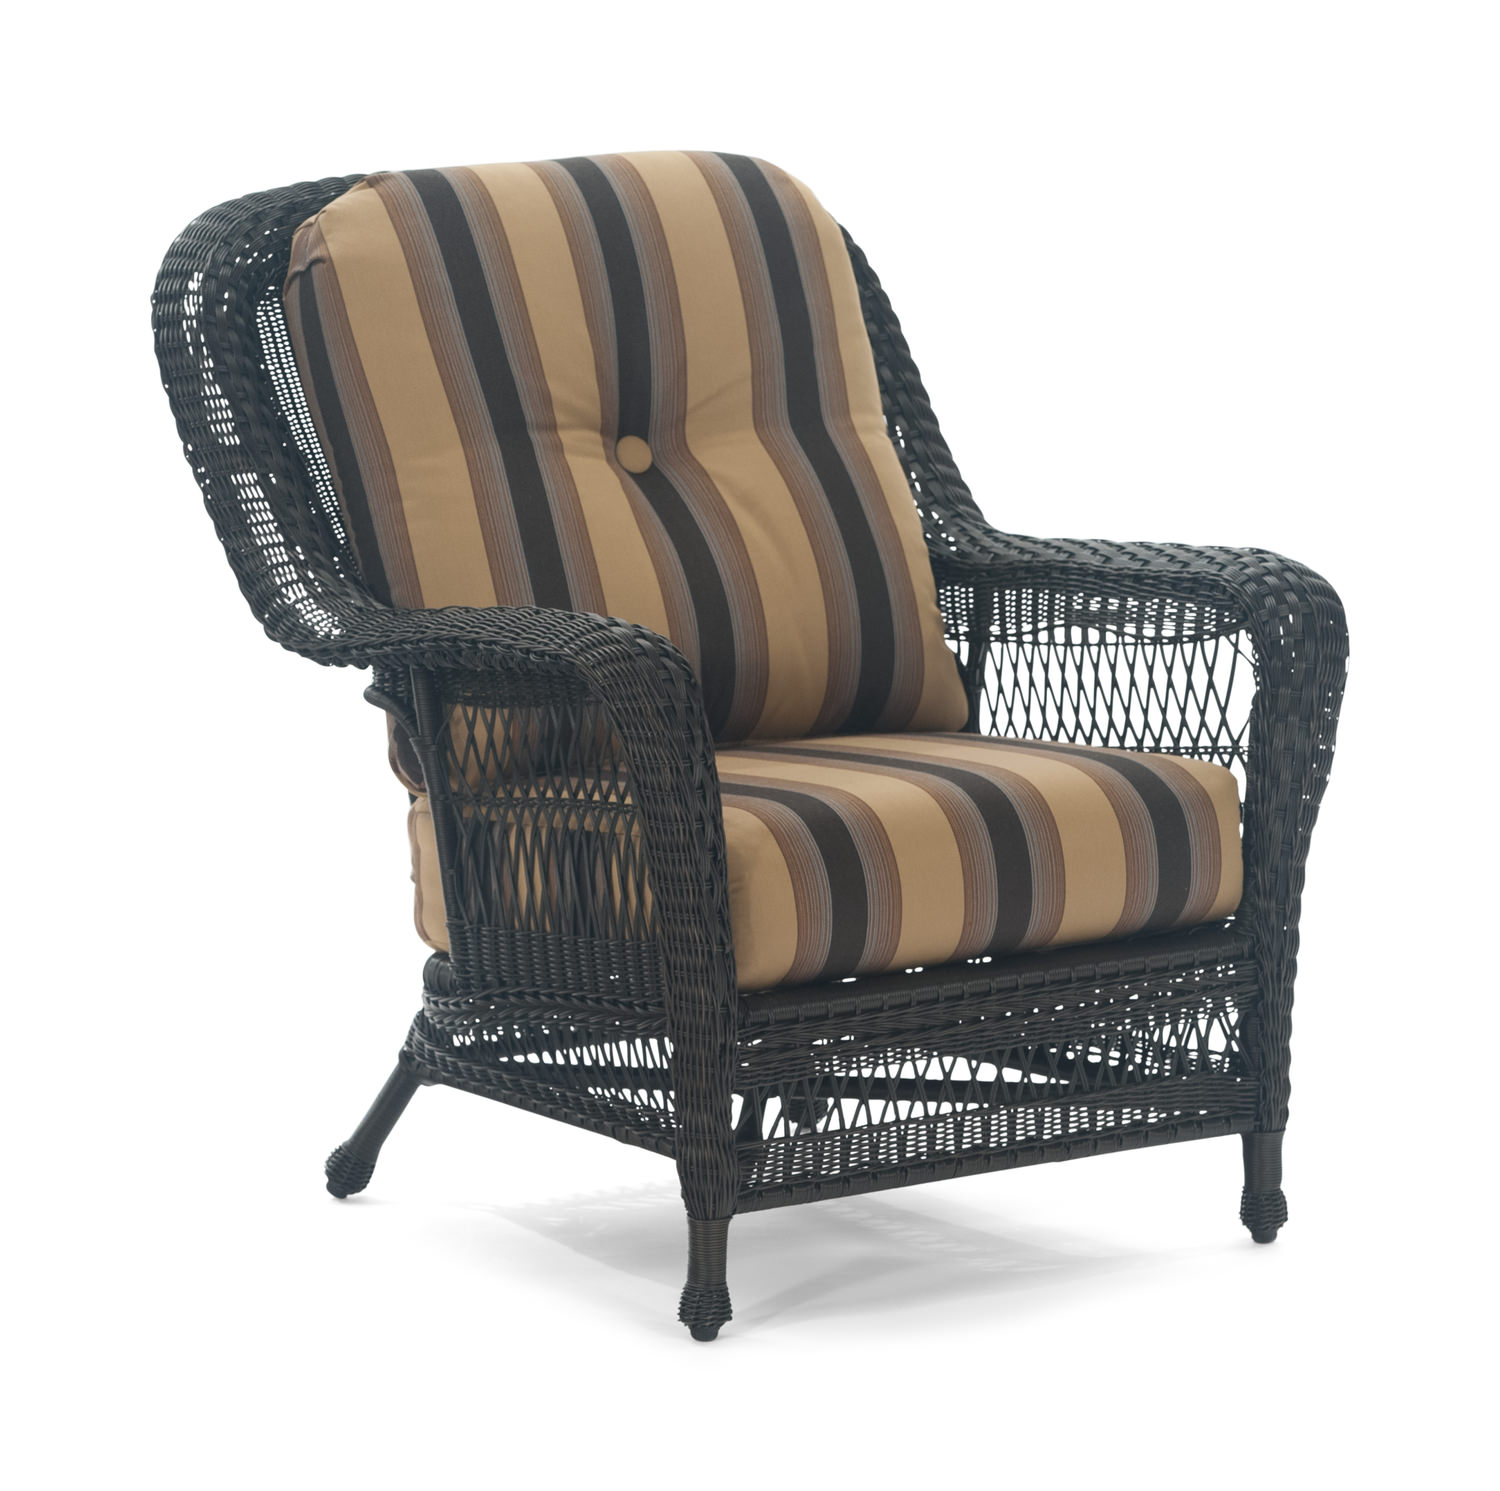 Outdoor Patio Furniture Savannah Ga: Savannah Wicker Club Chair By Erwin & Sons